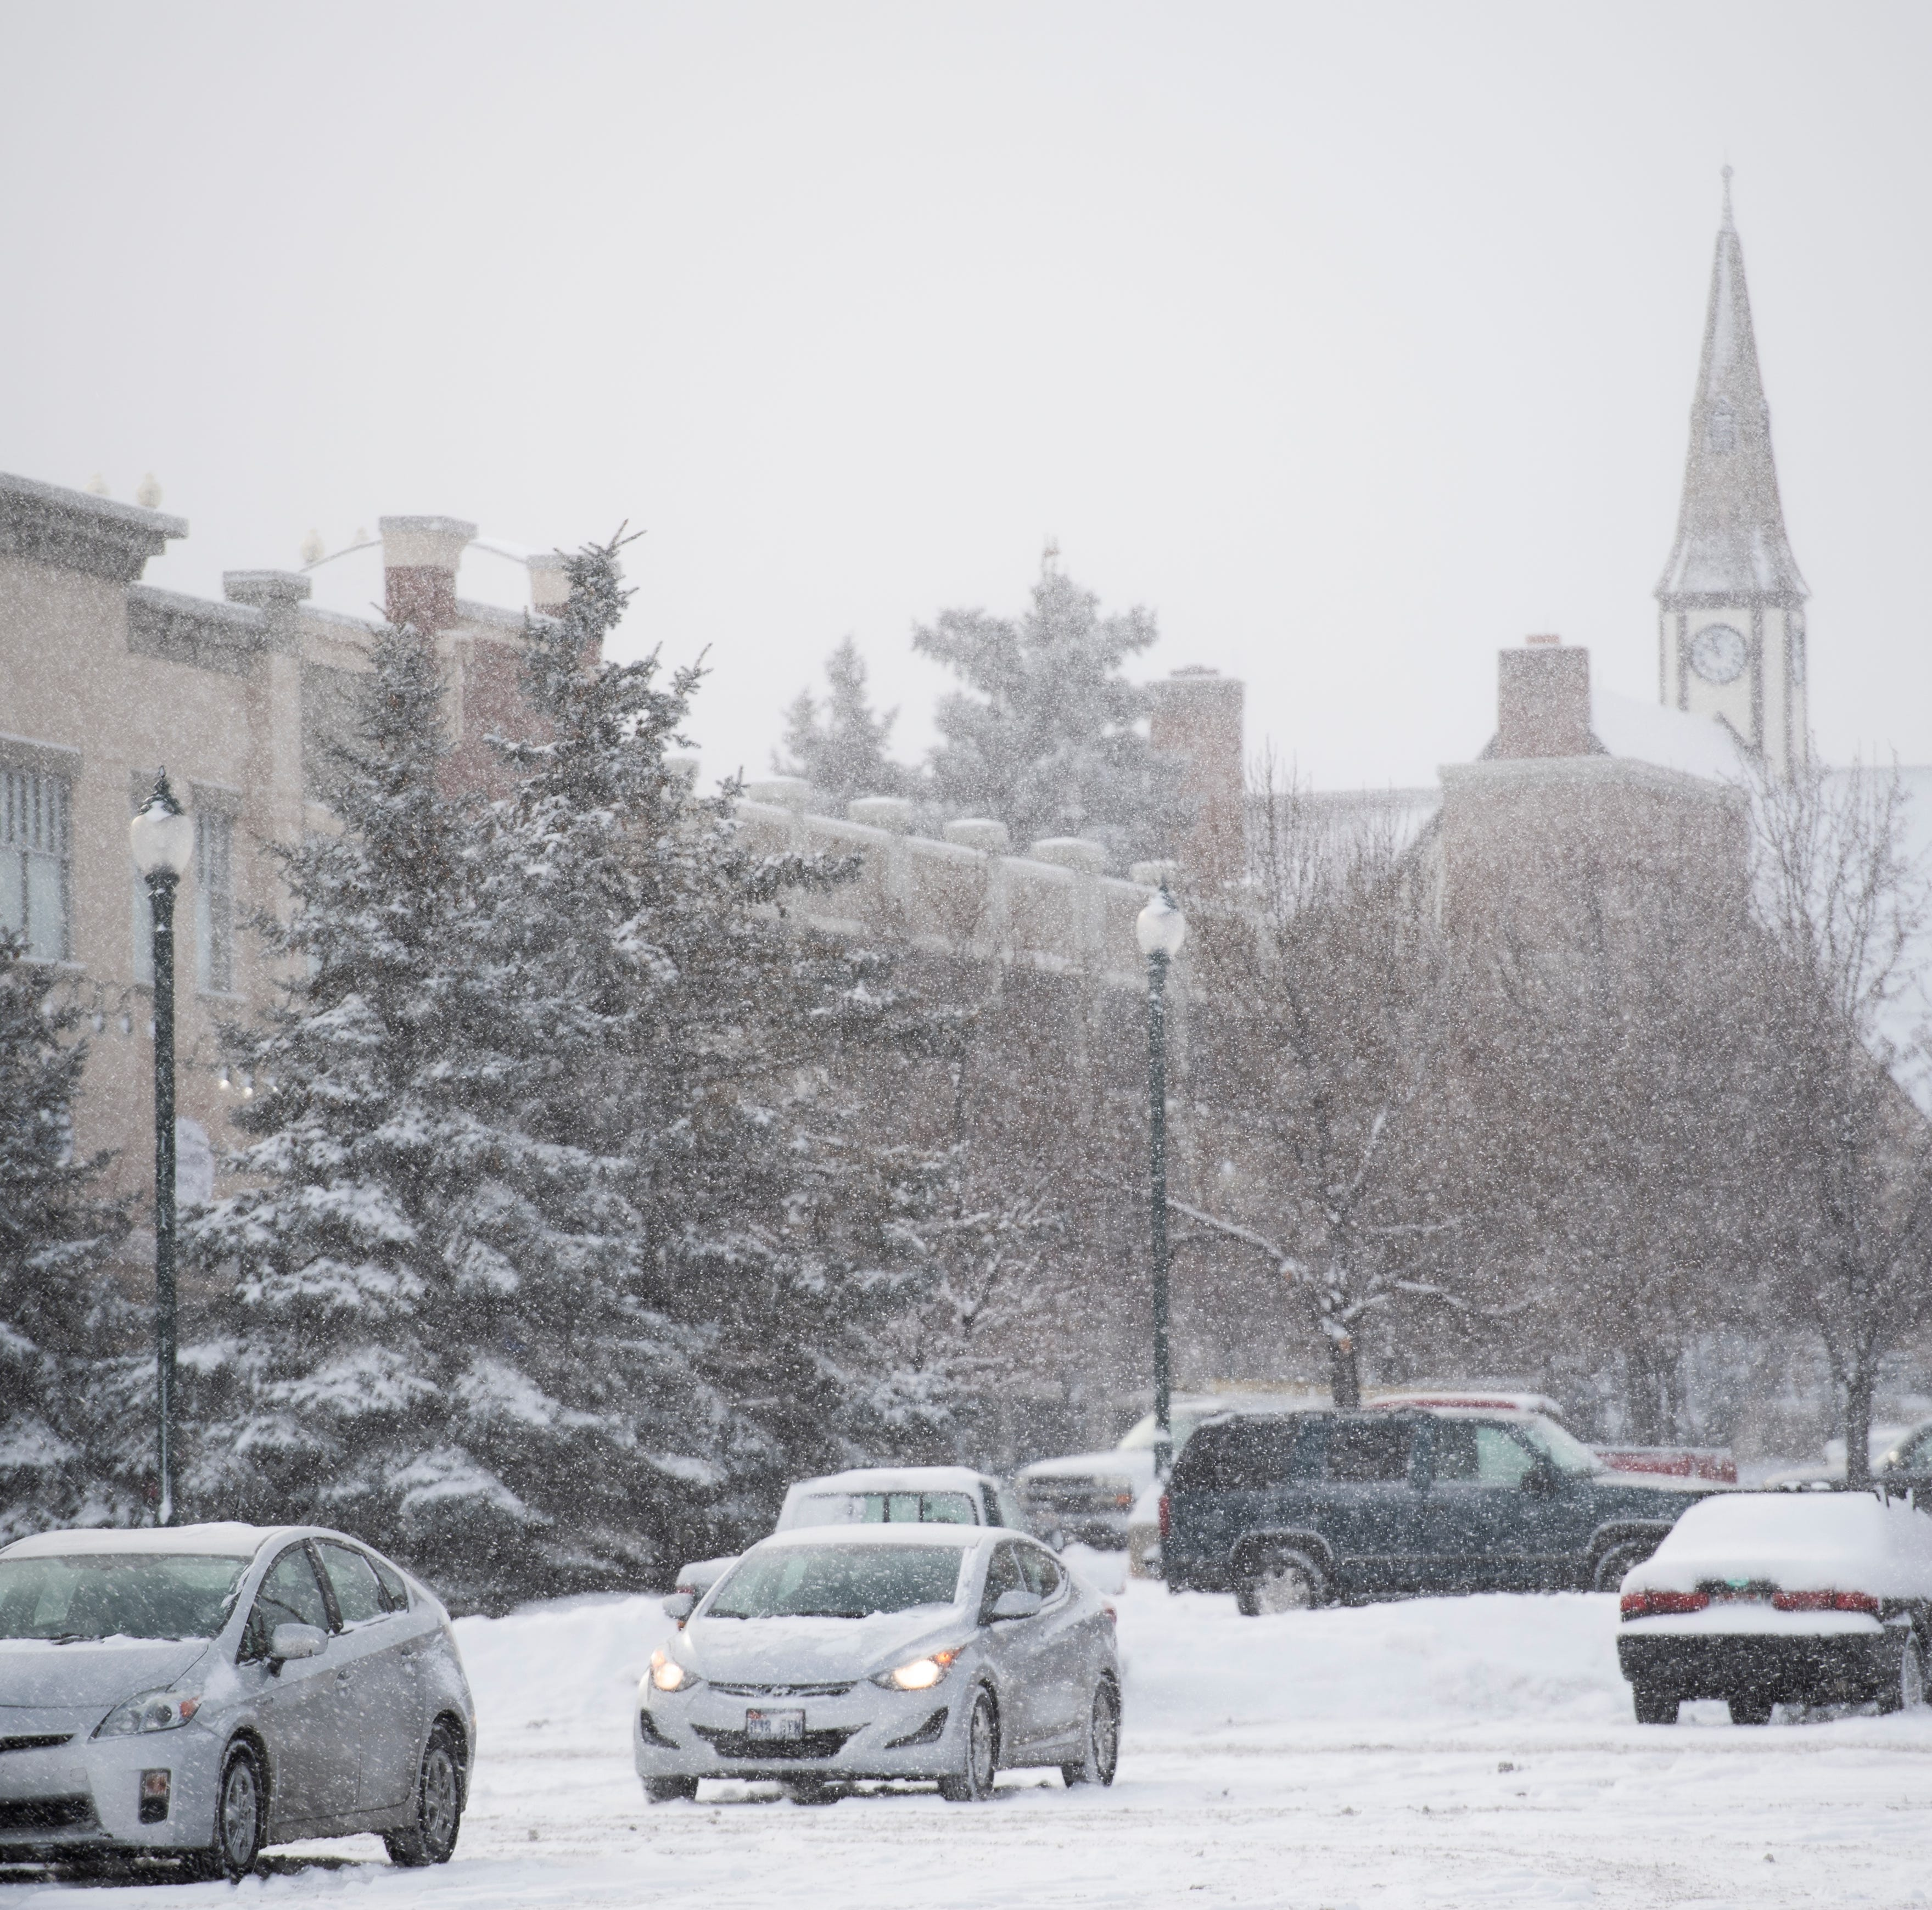 Snow in St. George? Winter storm forecasted to barrel into Southern Utah this week